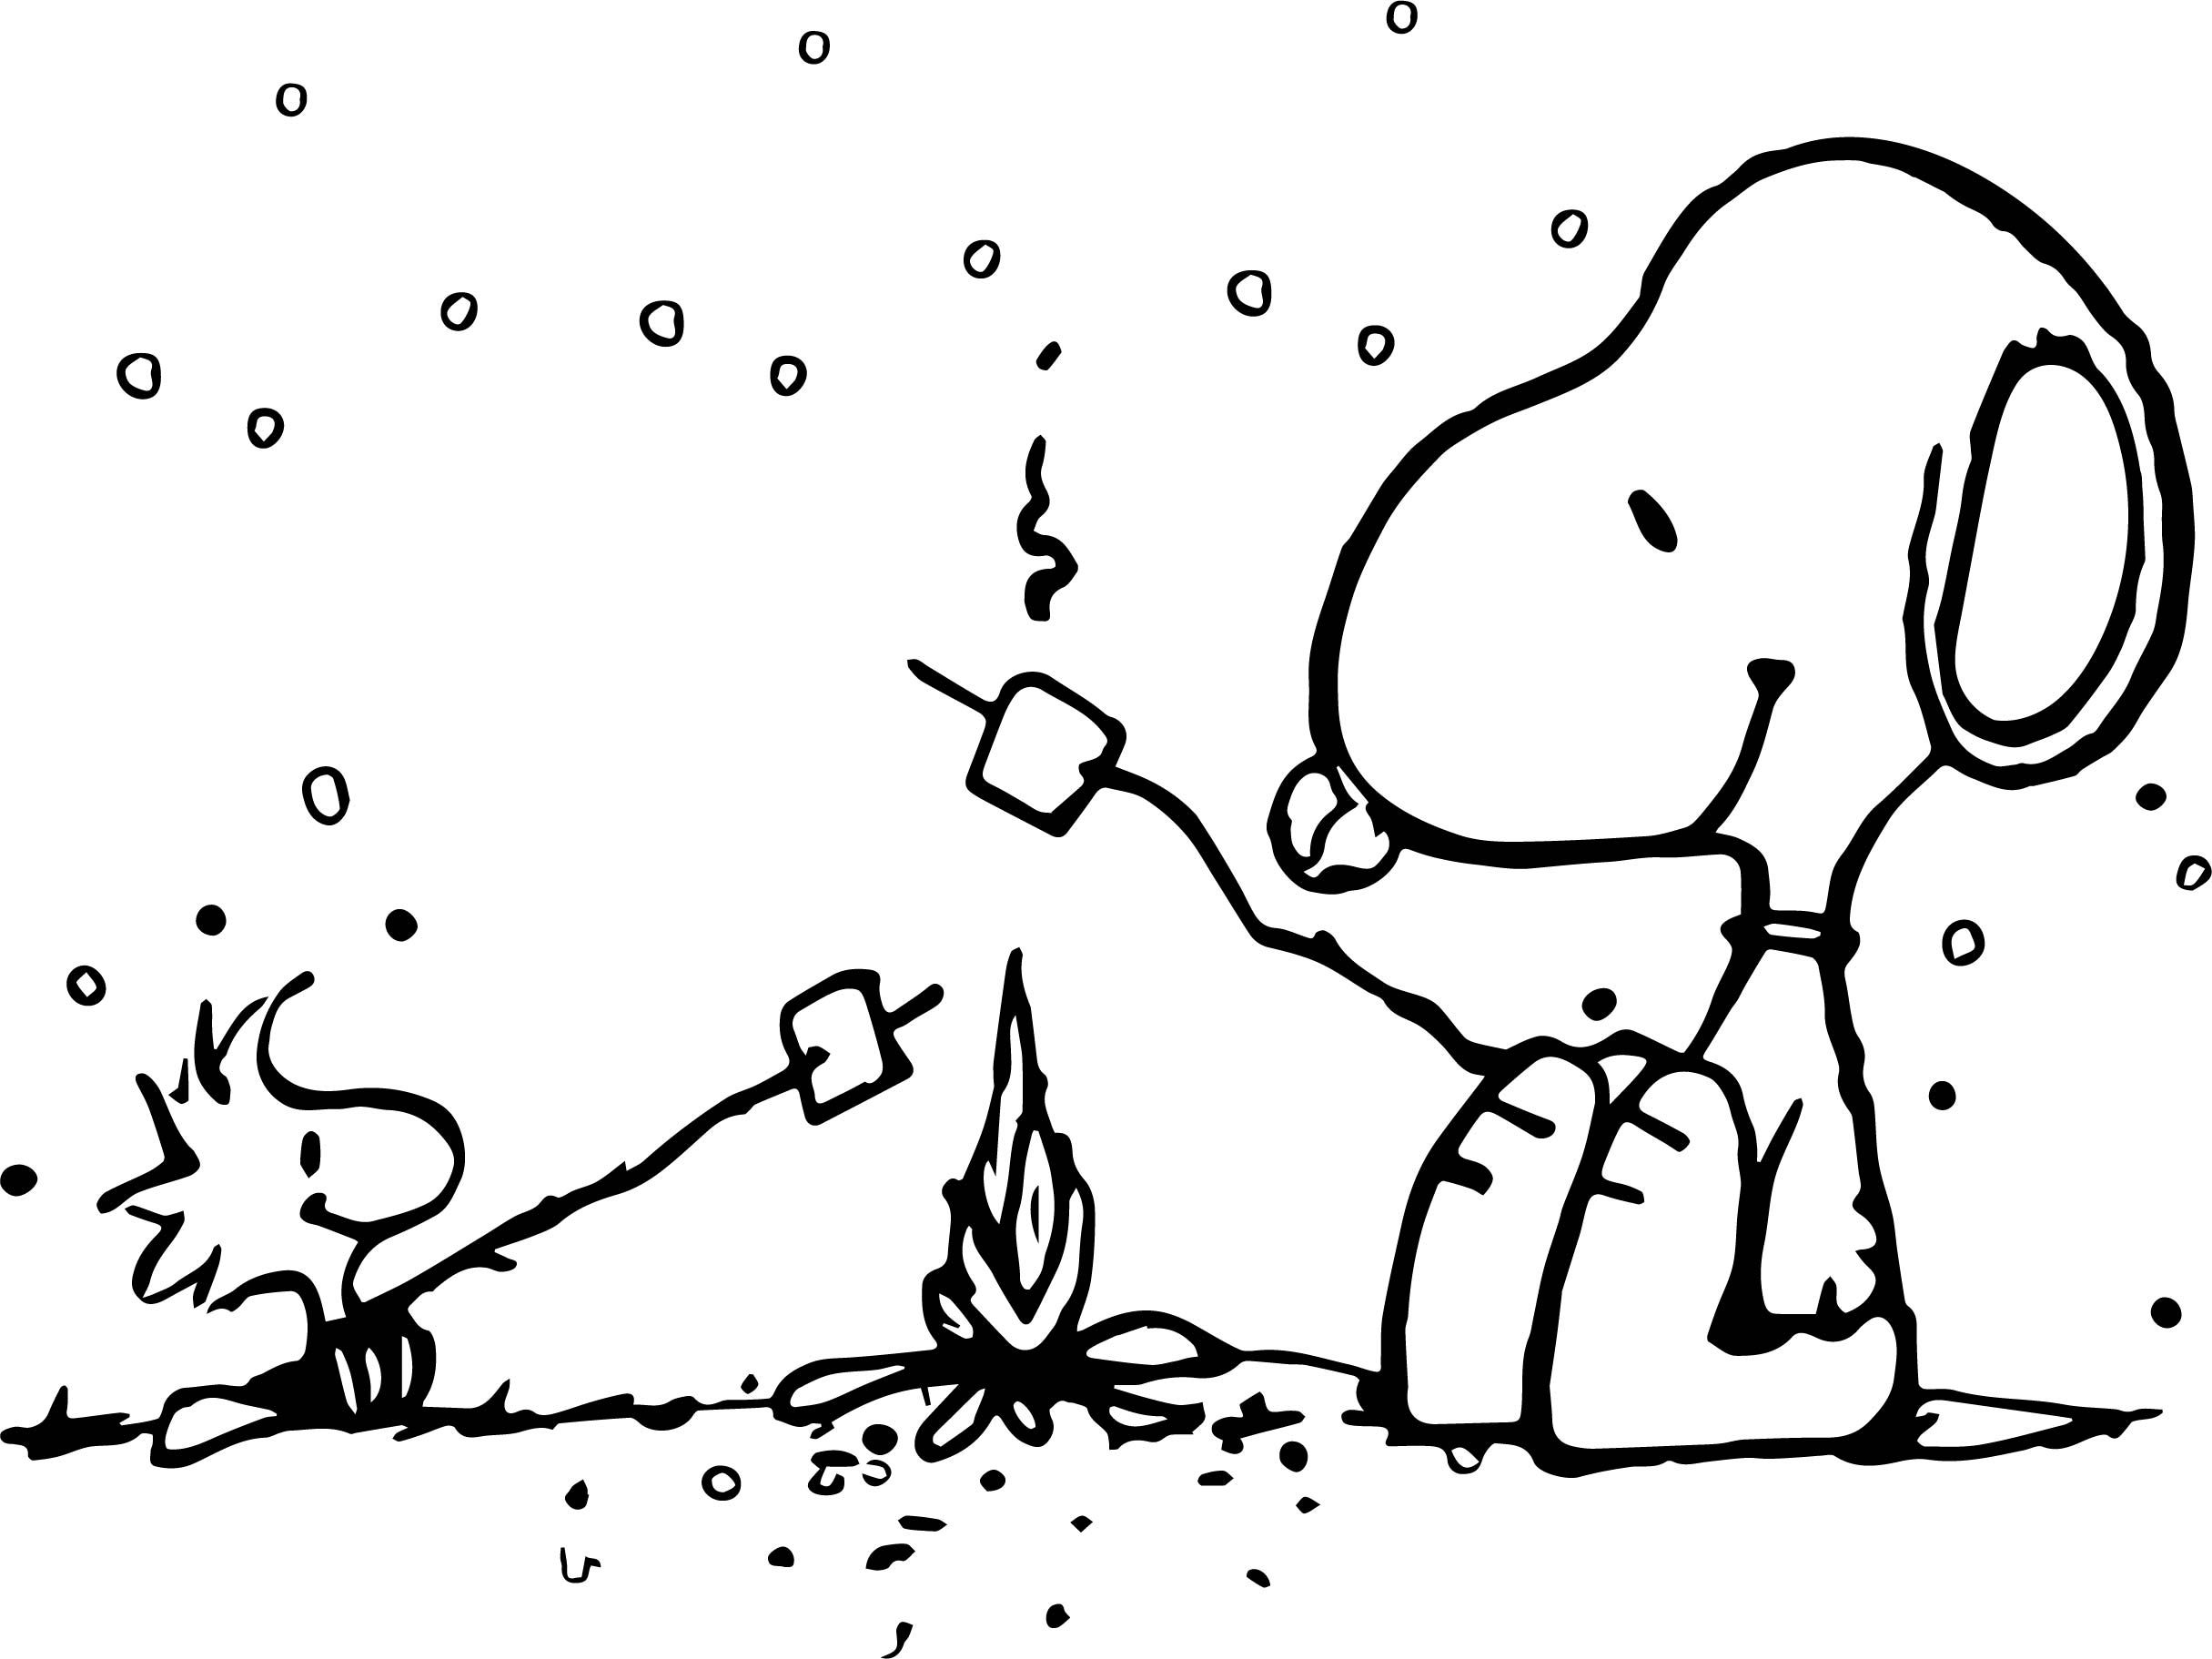 Awesome Snoopy And Woodstock Camping Coloring Page Snoopy